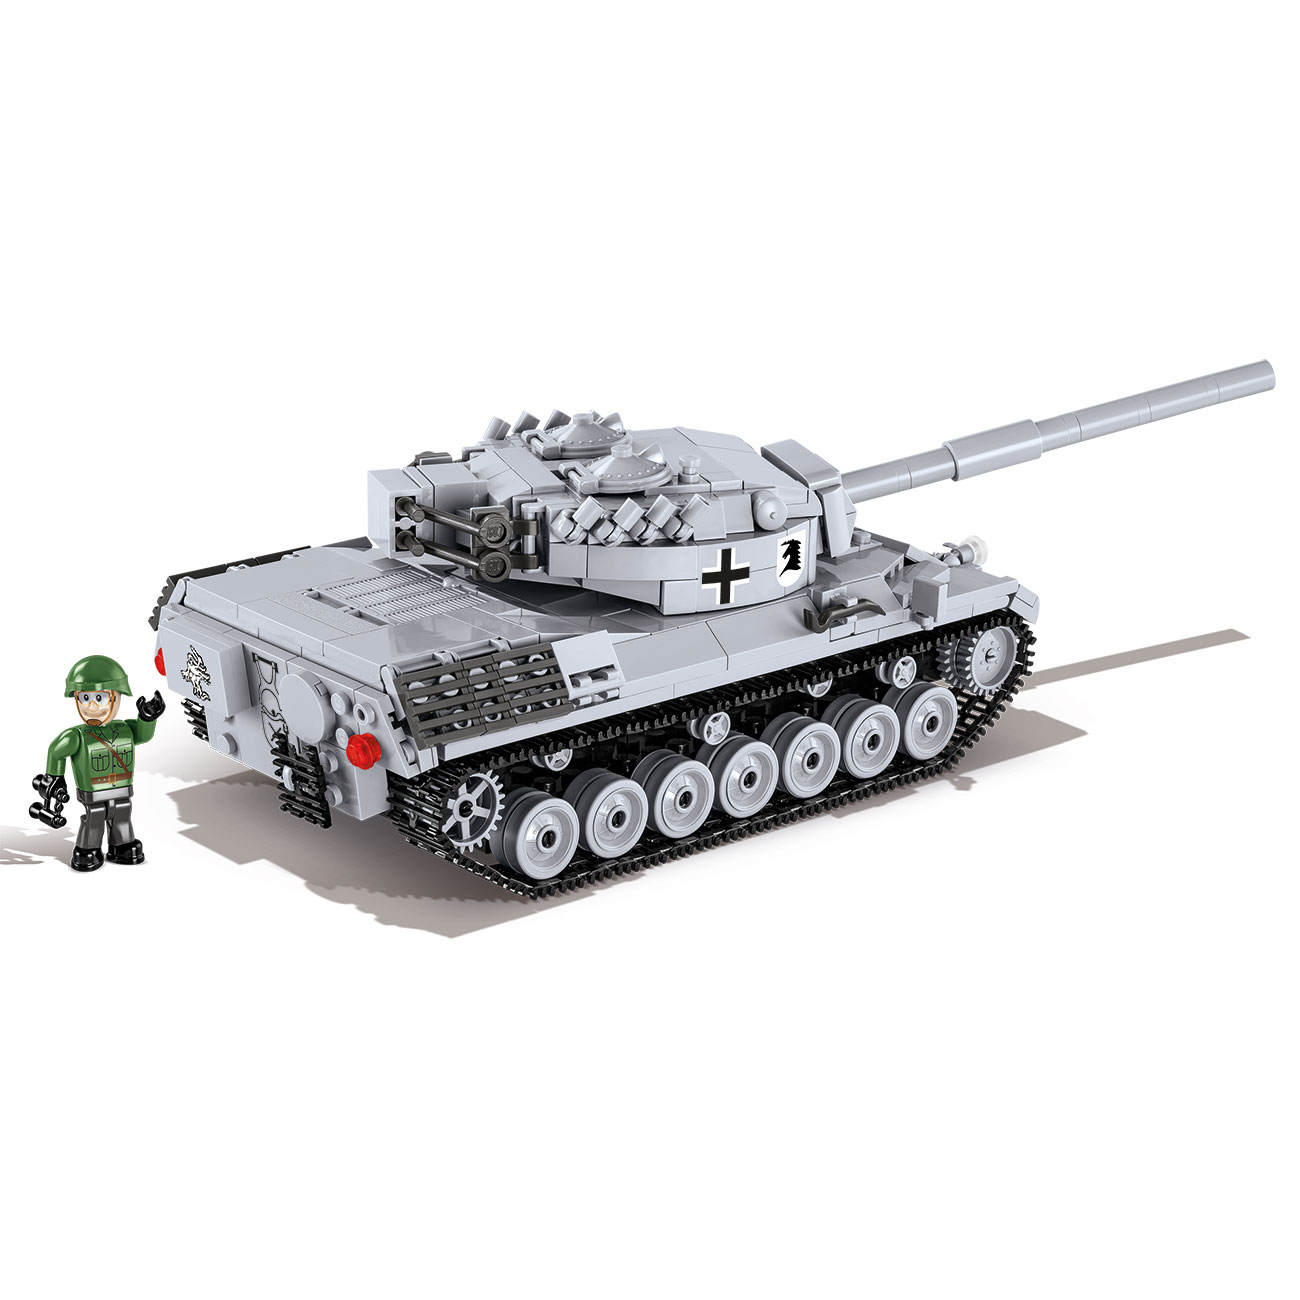 Cobi World Of Tanks Small Army Bausatz Panzer Leopard I 600 Teile 3037 1